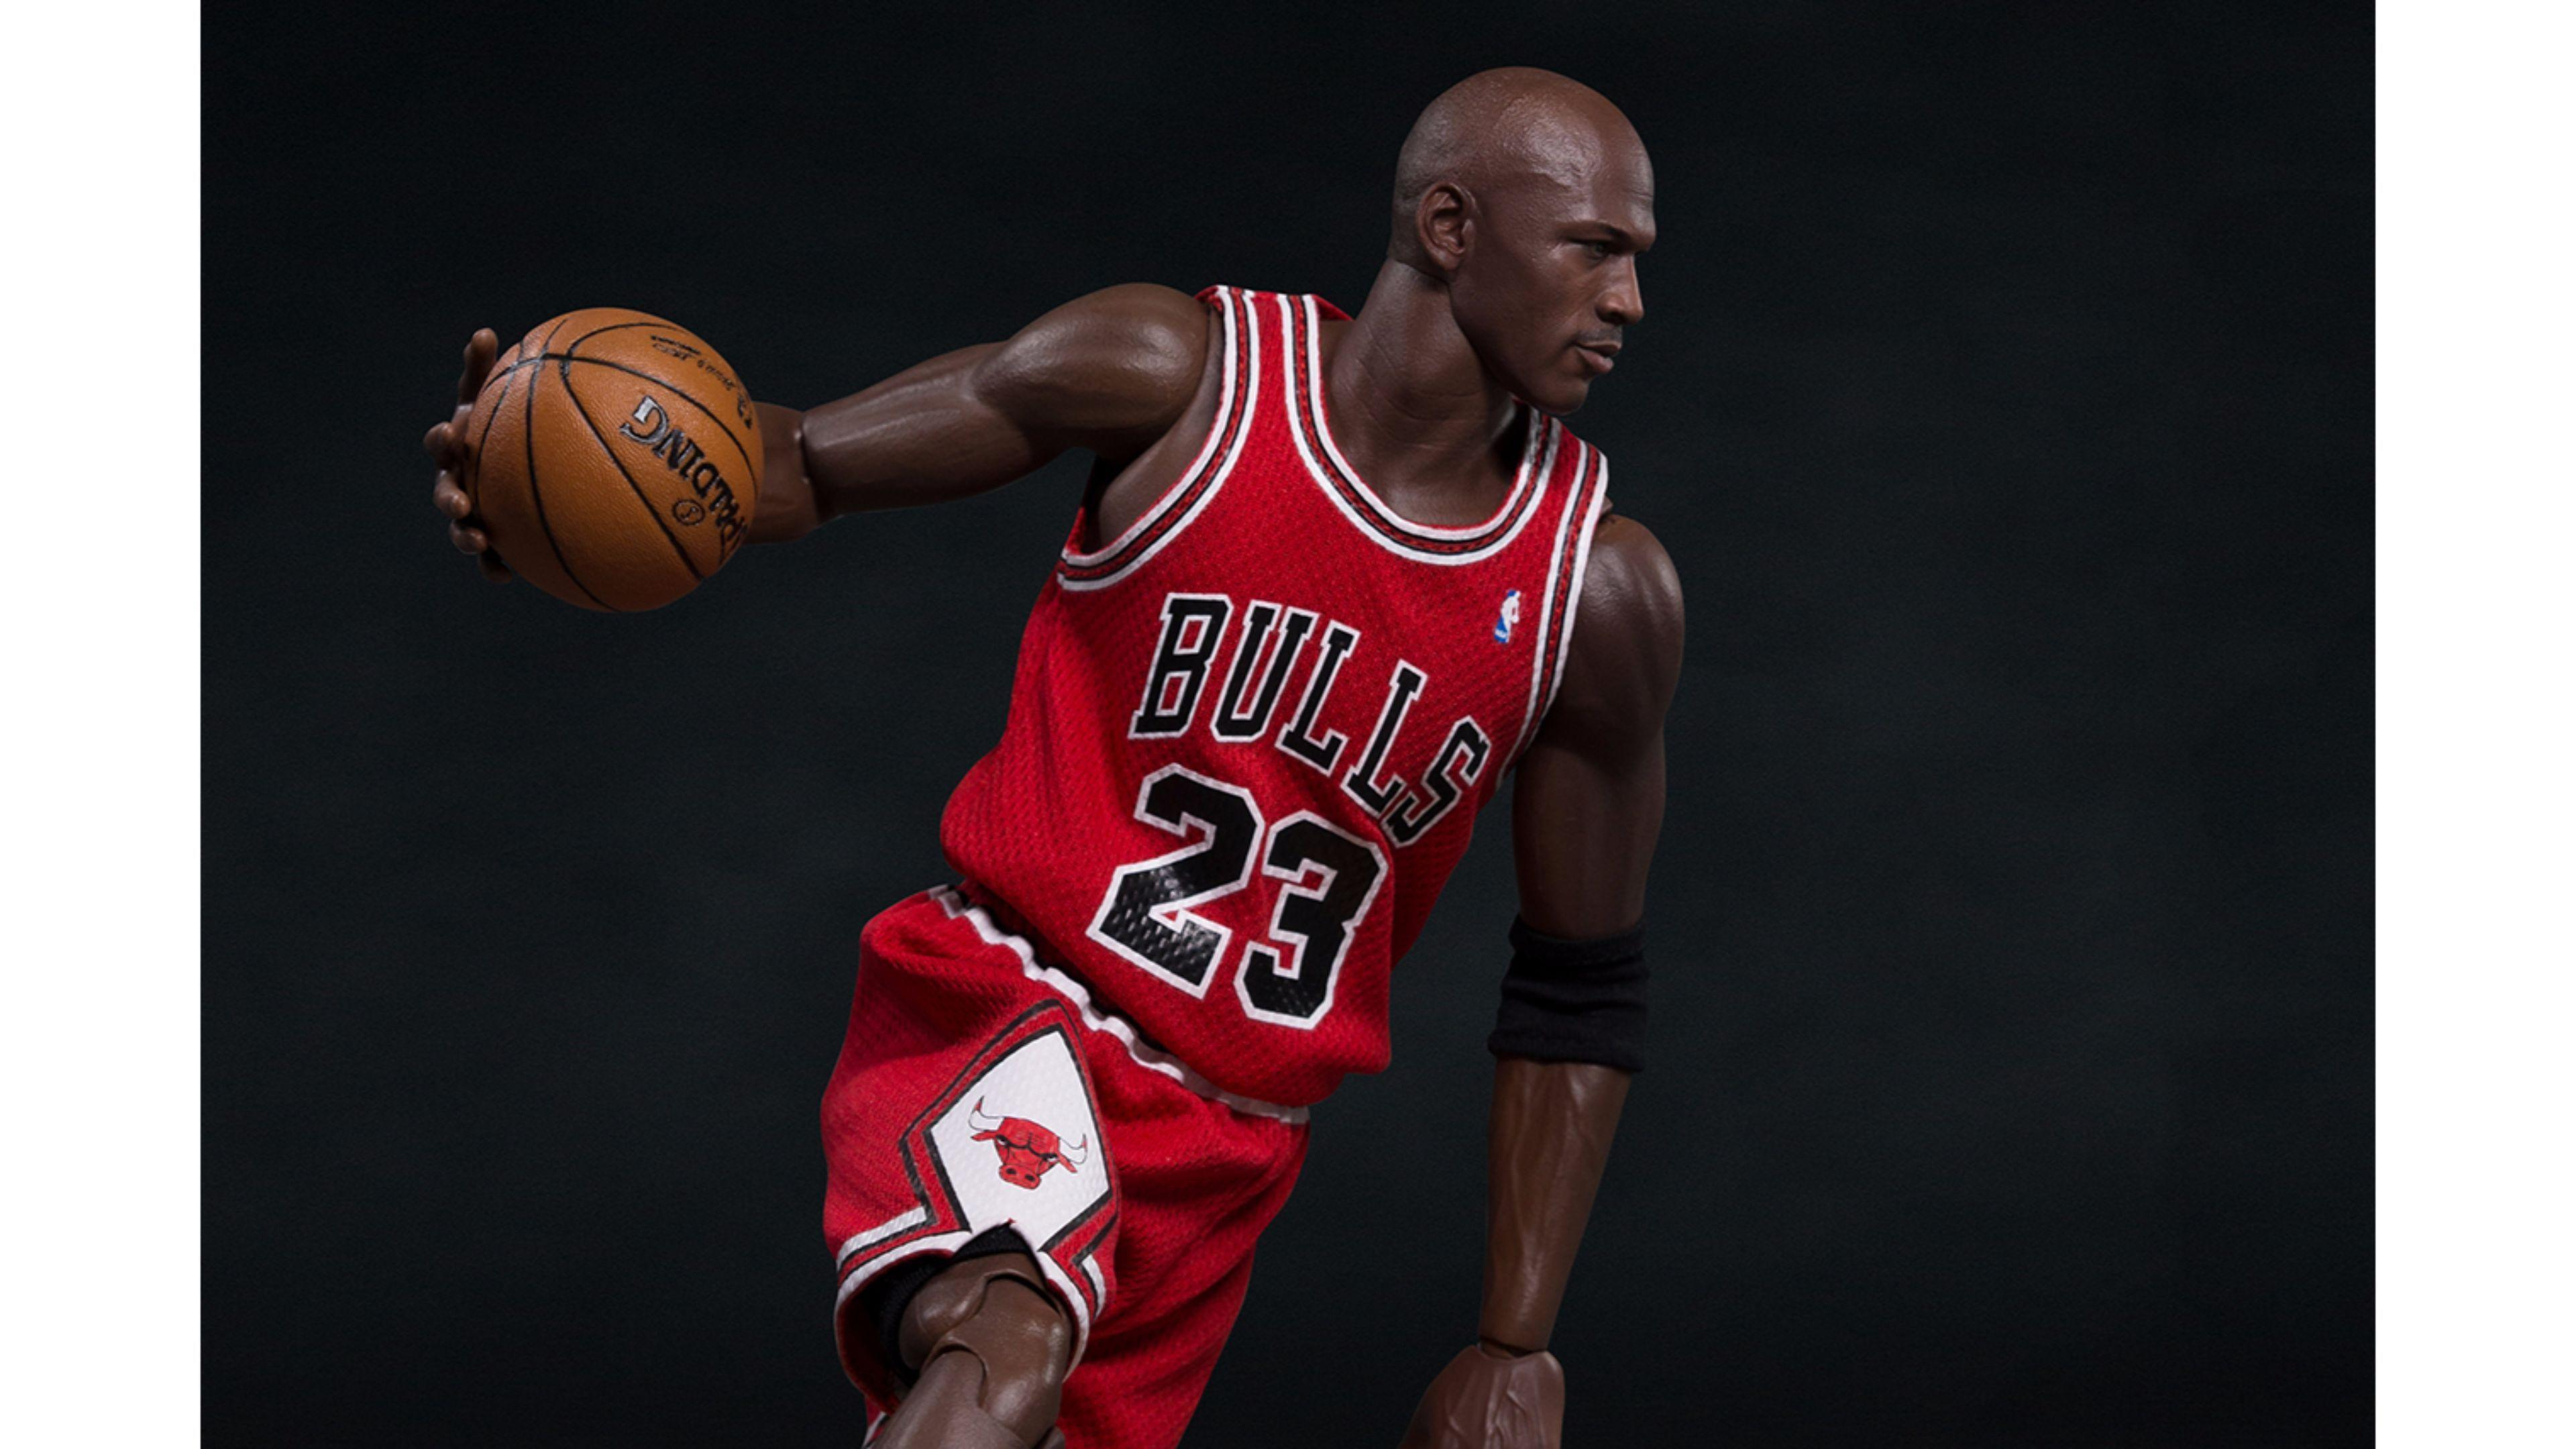 Michael Jordan 23 Wallpaper: Chicago Bulls Wallpapers HD 2017